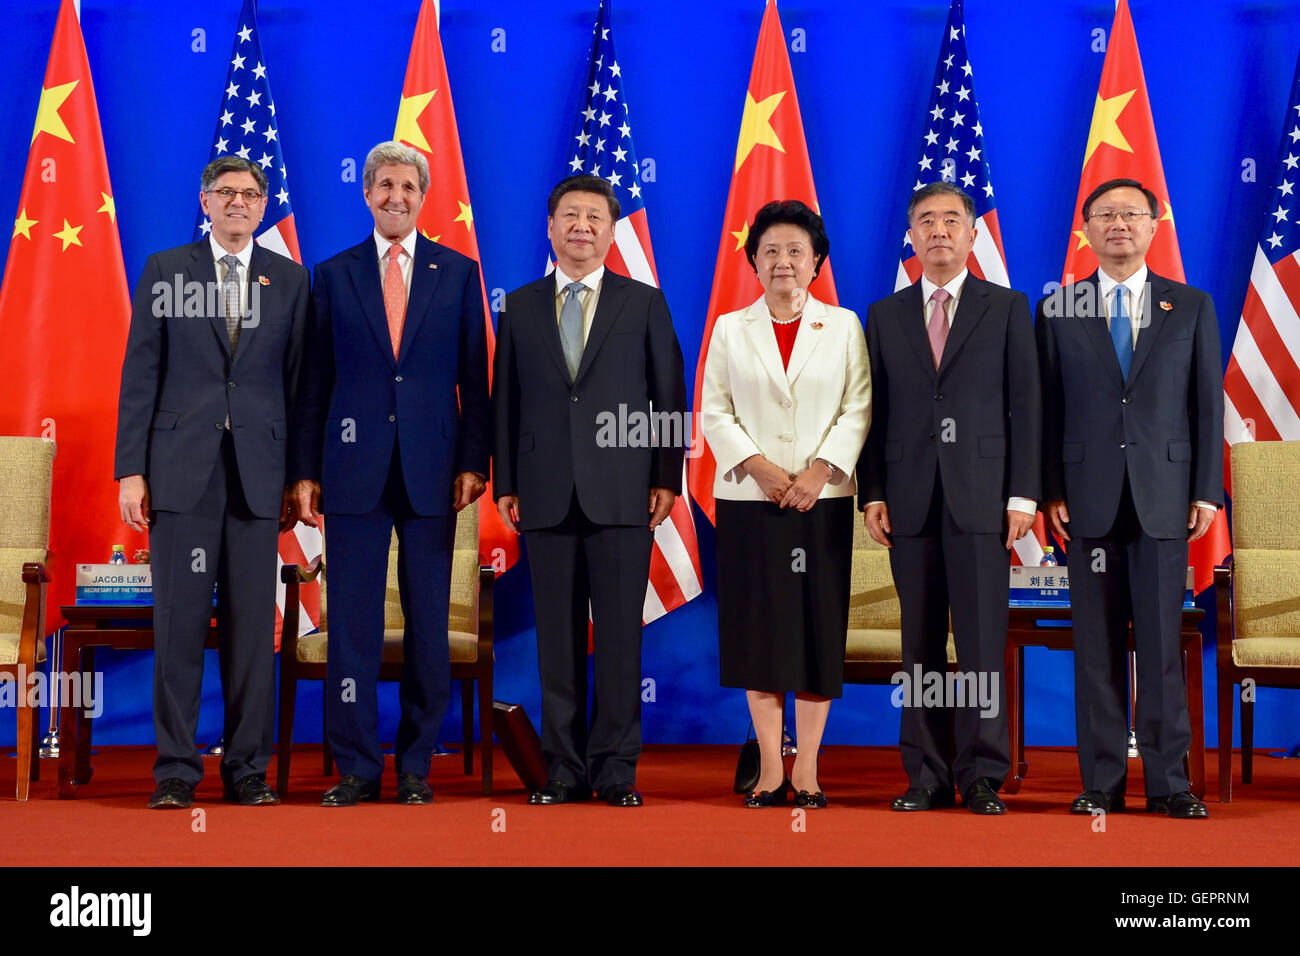 Secretaries Lew and Kerry Pose With Chinese President Xi, Vice Premiers Liu and Wang, and State Councilor Yang Before - Stock Image